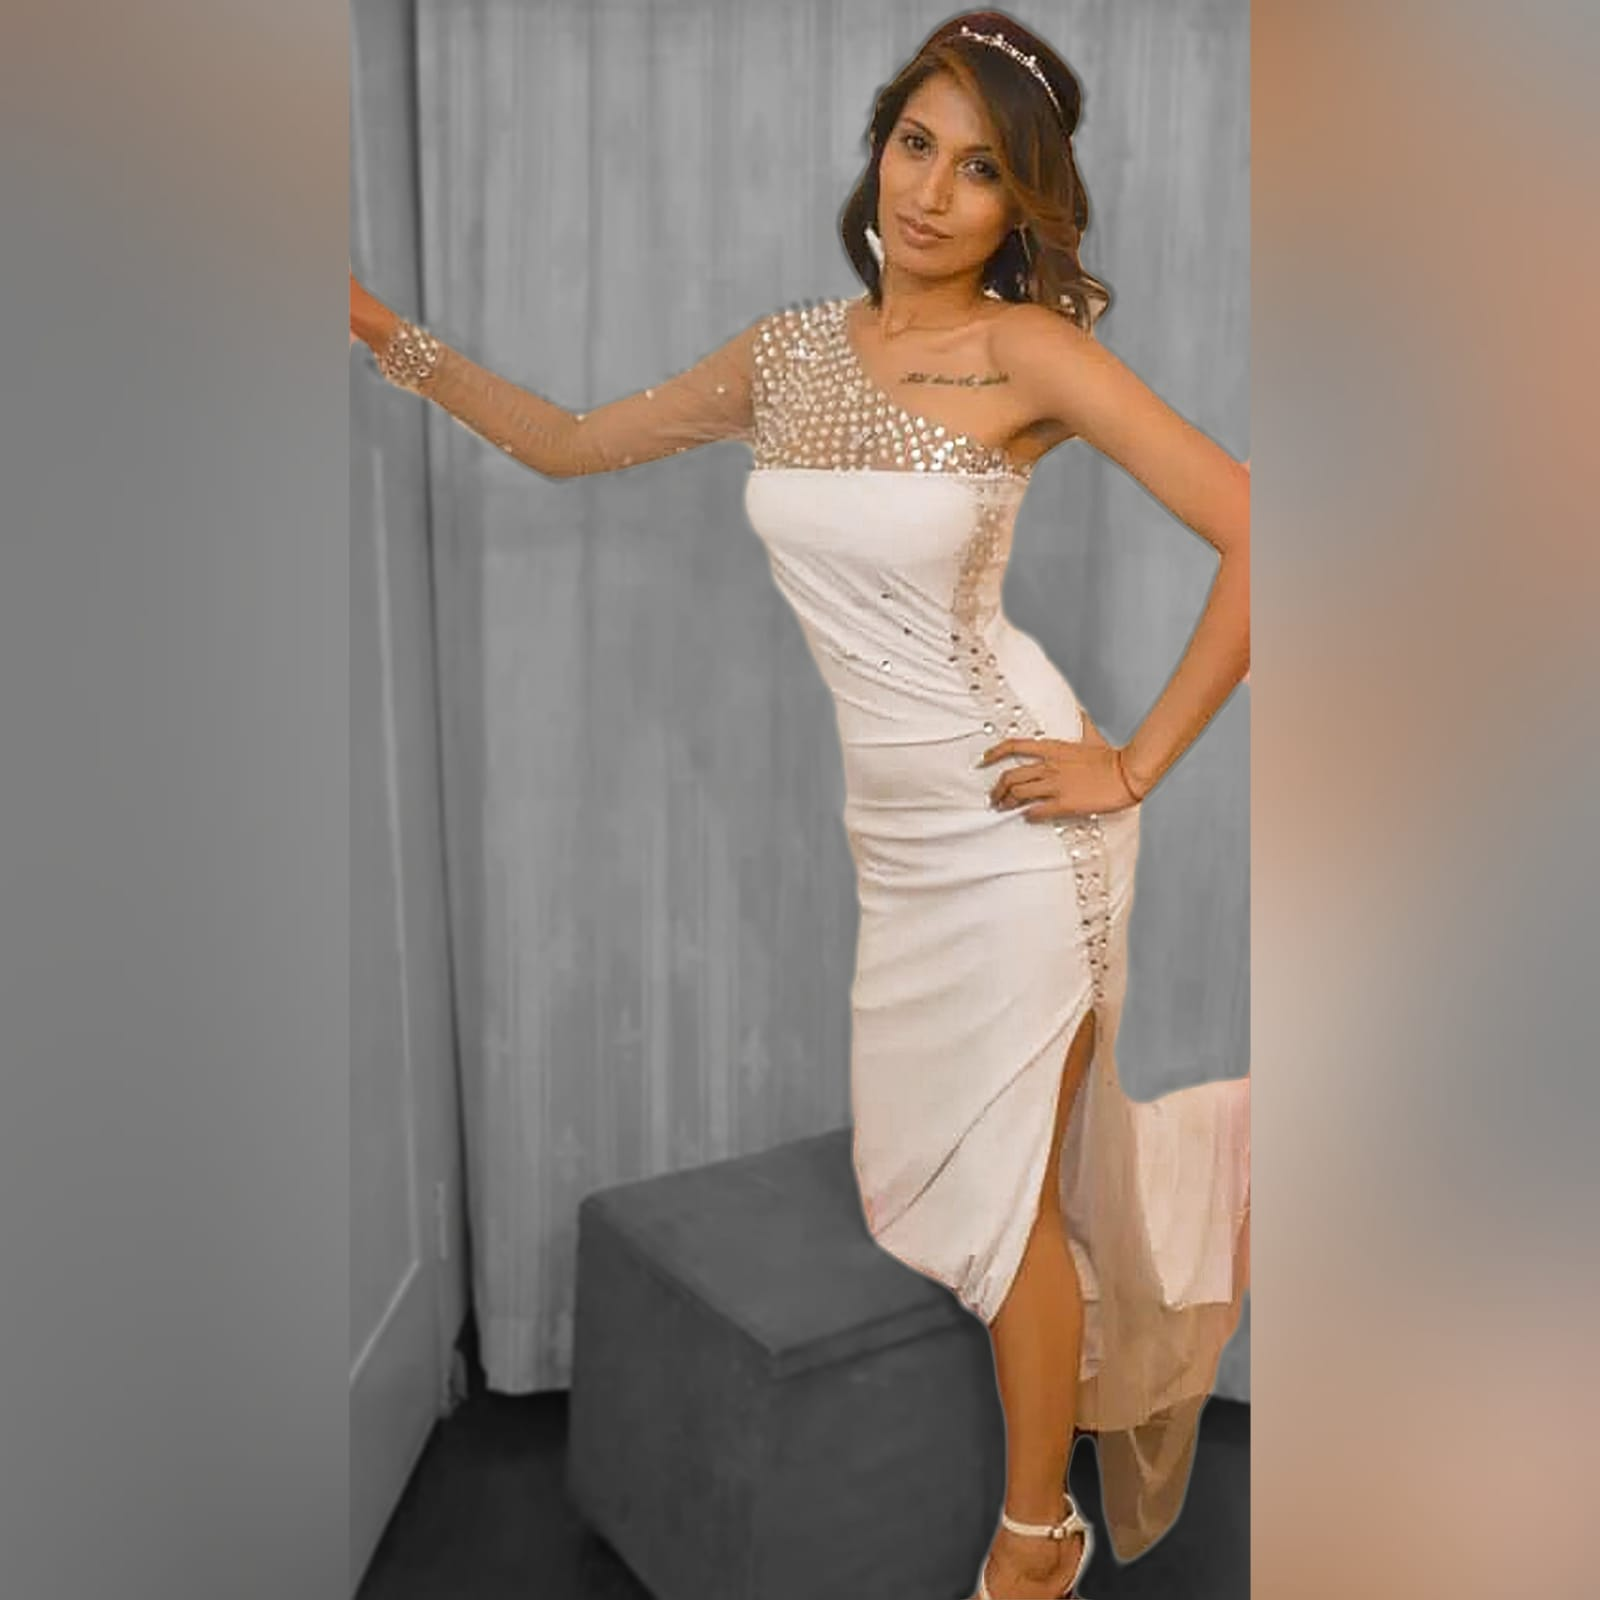 White and silver long fitted new years party dress 1 white and silver long fitted new years party dress. With an angled neckline and one sleeve detailed with silver beads. With a sheer side panel with beads creating a slit.